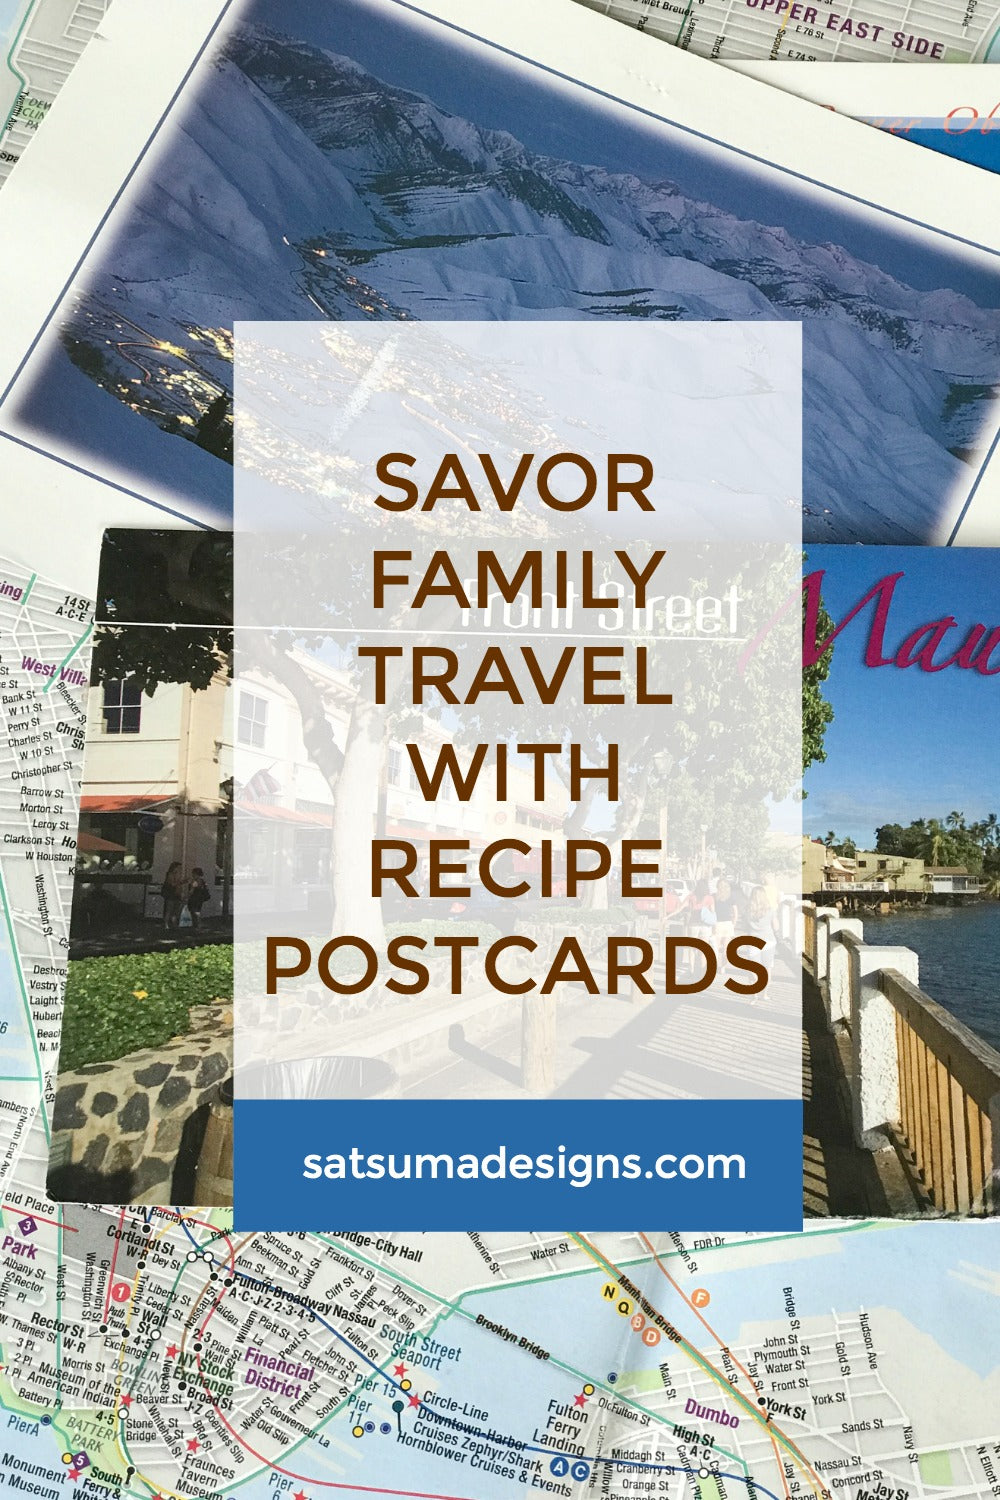 savor family travel with recipe postcards | #travelhack #familytravel #recipes #recipehack #satsuma